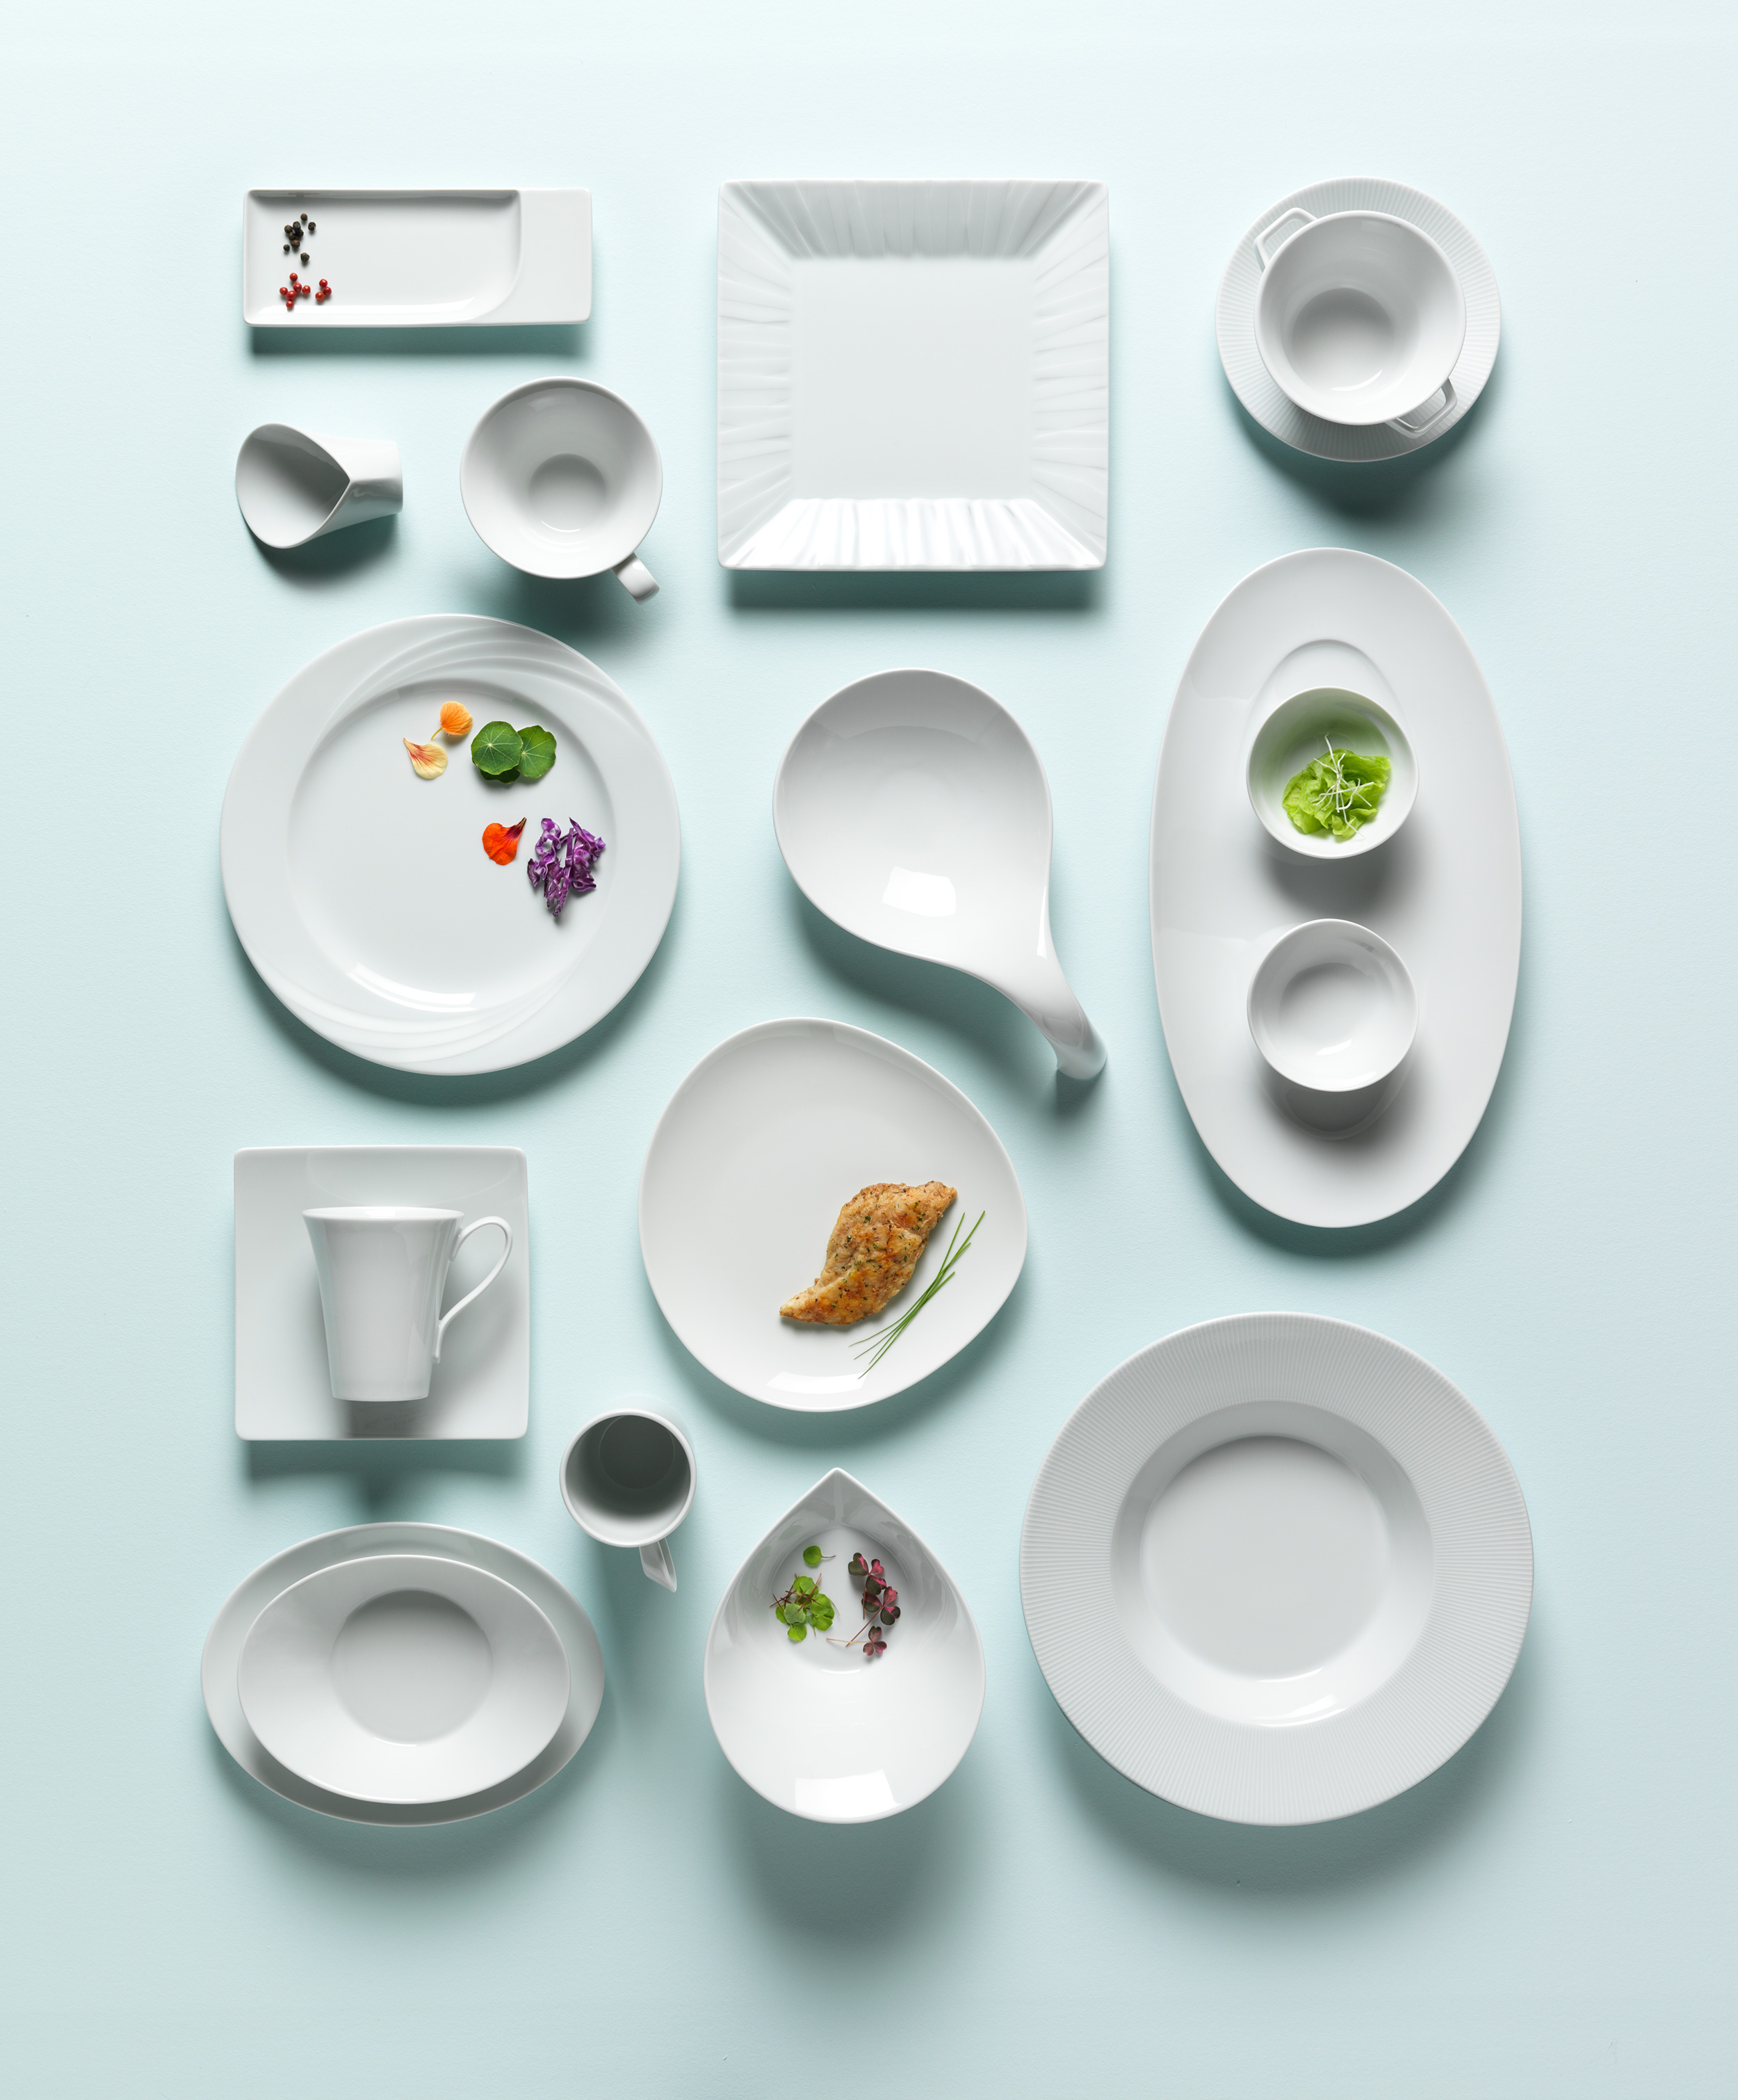 Libbey Foodservice Introduces the Artistry Collection & Libbey Foodservice Introduces the Artistry Collection: Libbey ...